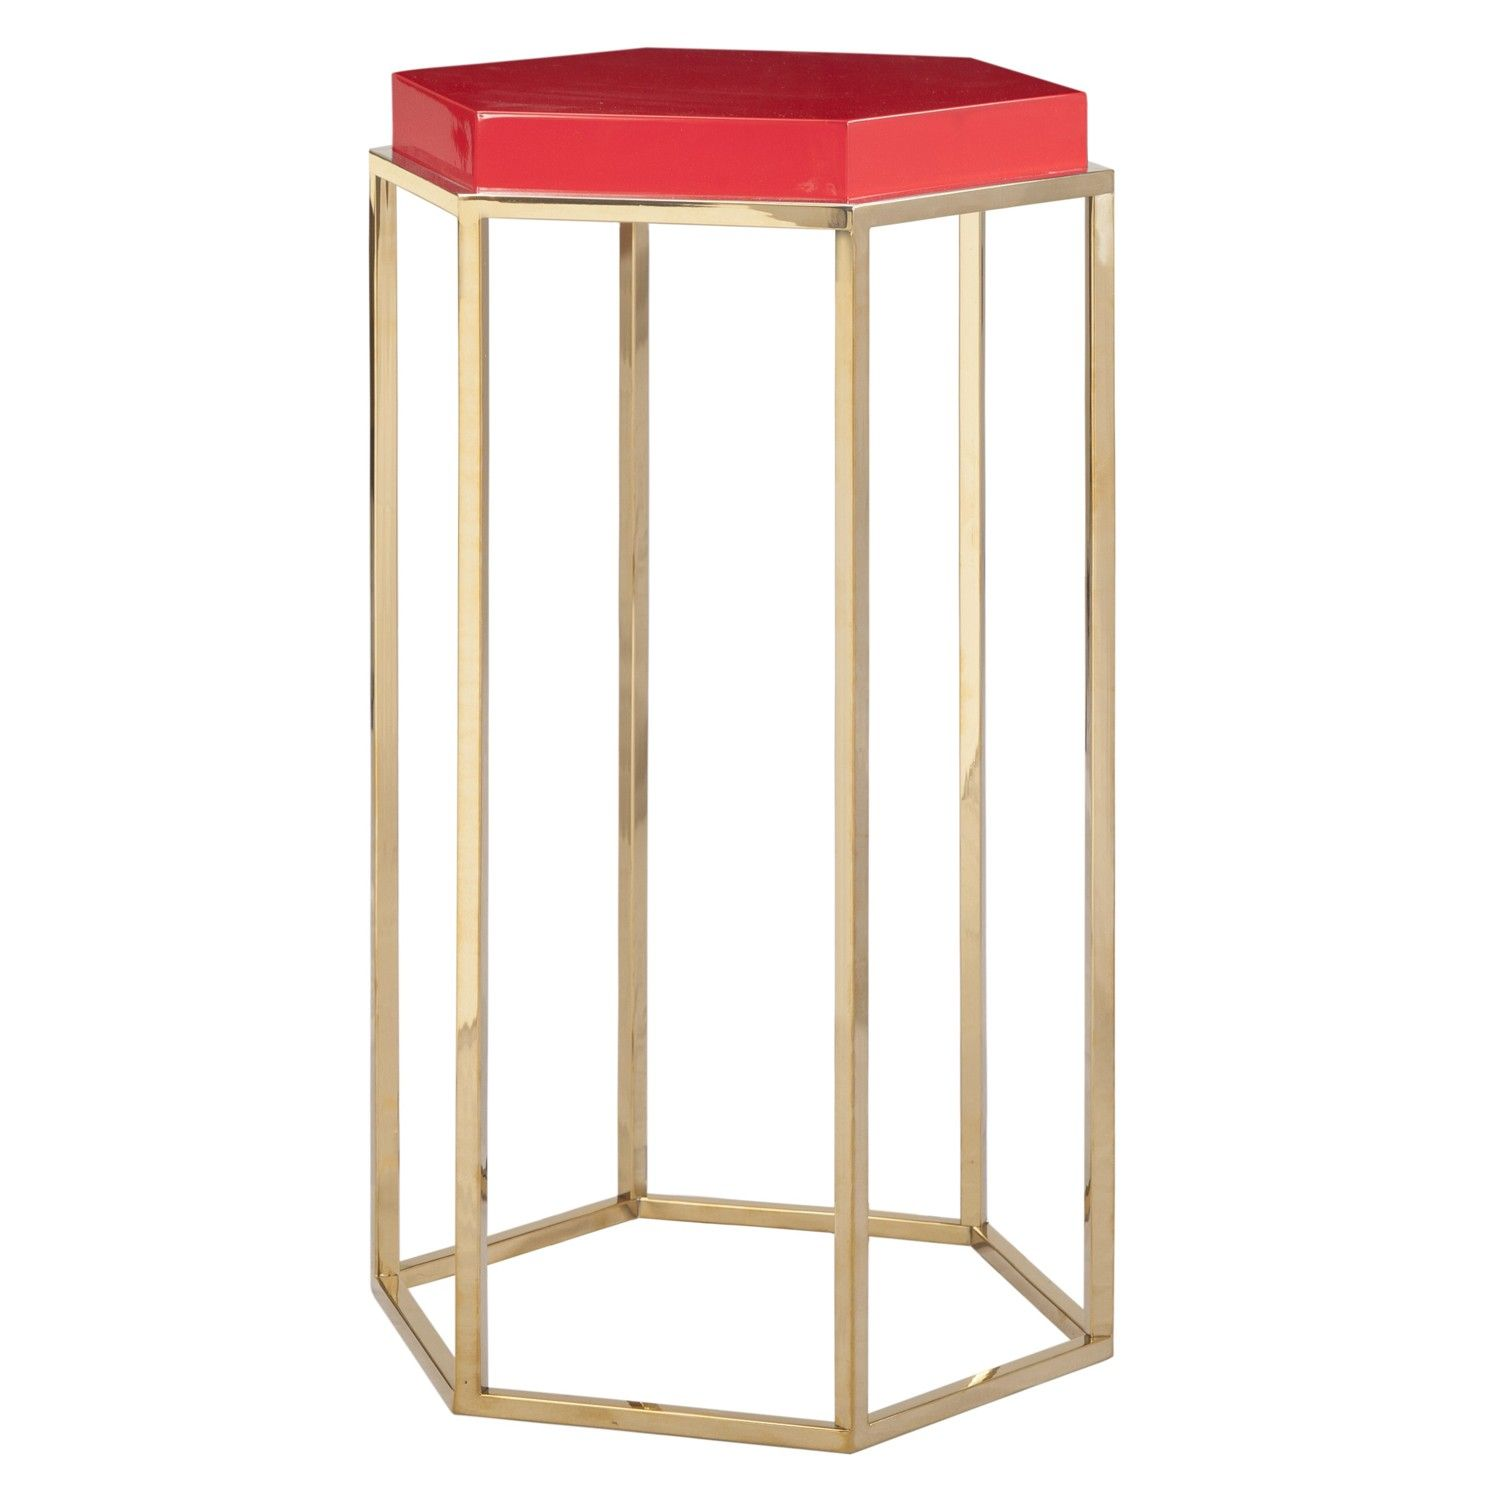 Worlds Away Elsa Side Table - Red